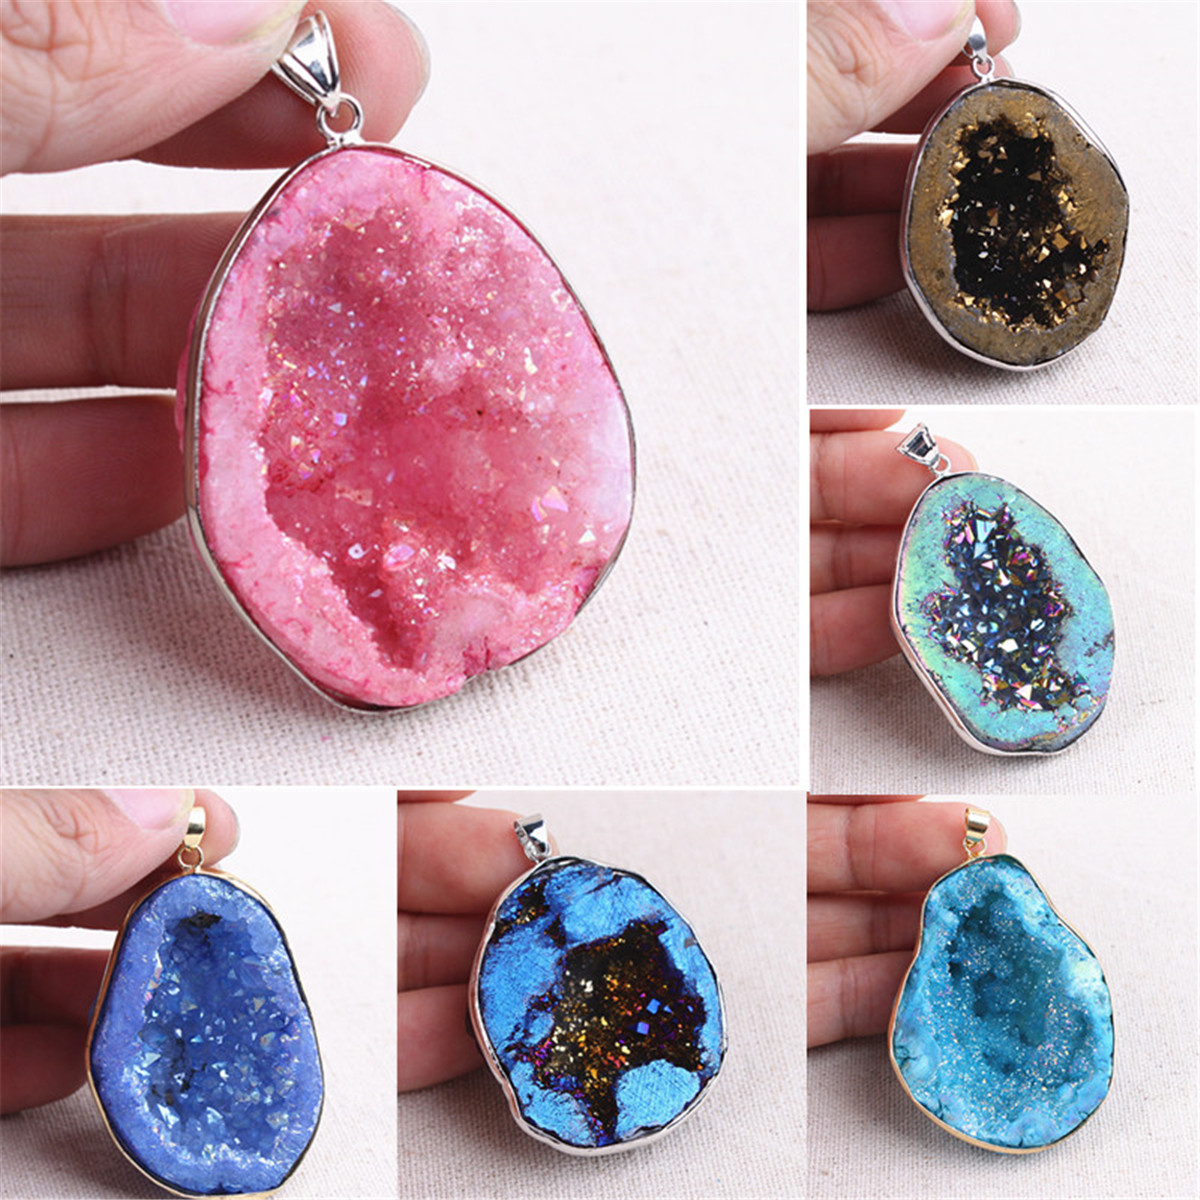 16x19 mm 8mm thickness Sterling Silver Electroplated Drusy Natural Stone Pendant Druzy Pendant Natural White Agate Raw Gemstone Pendant